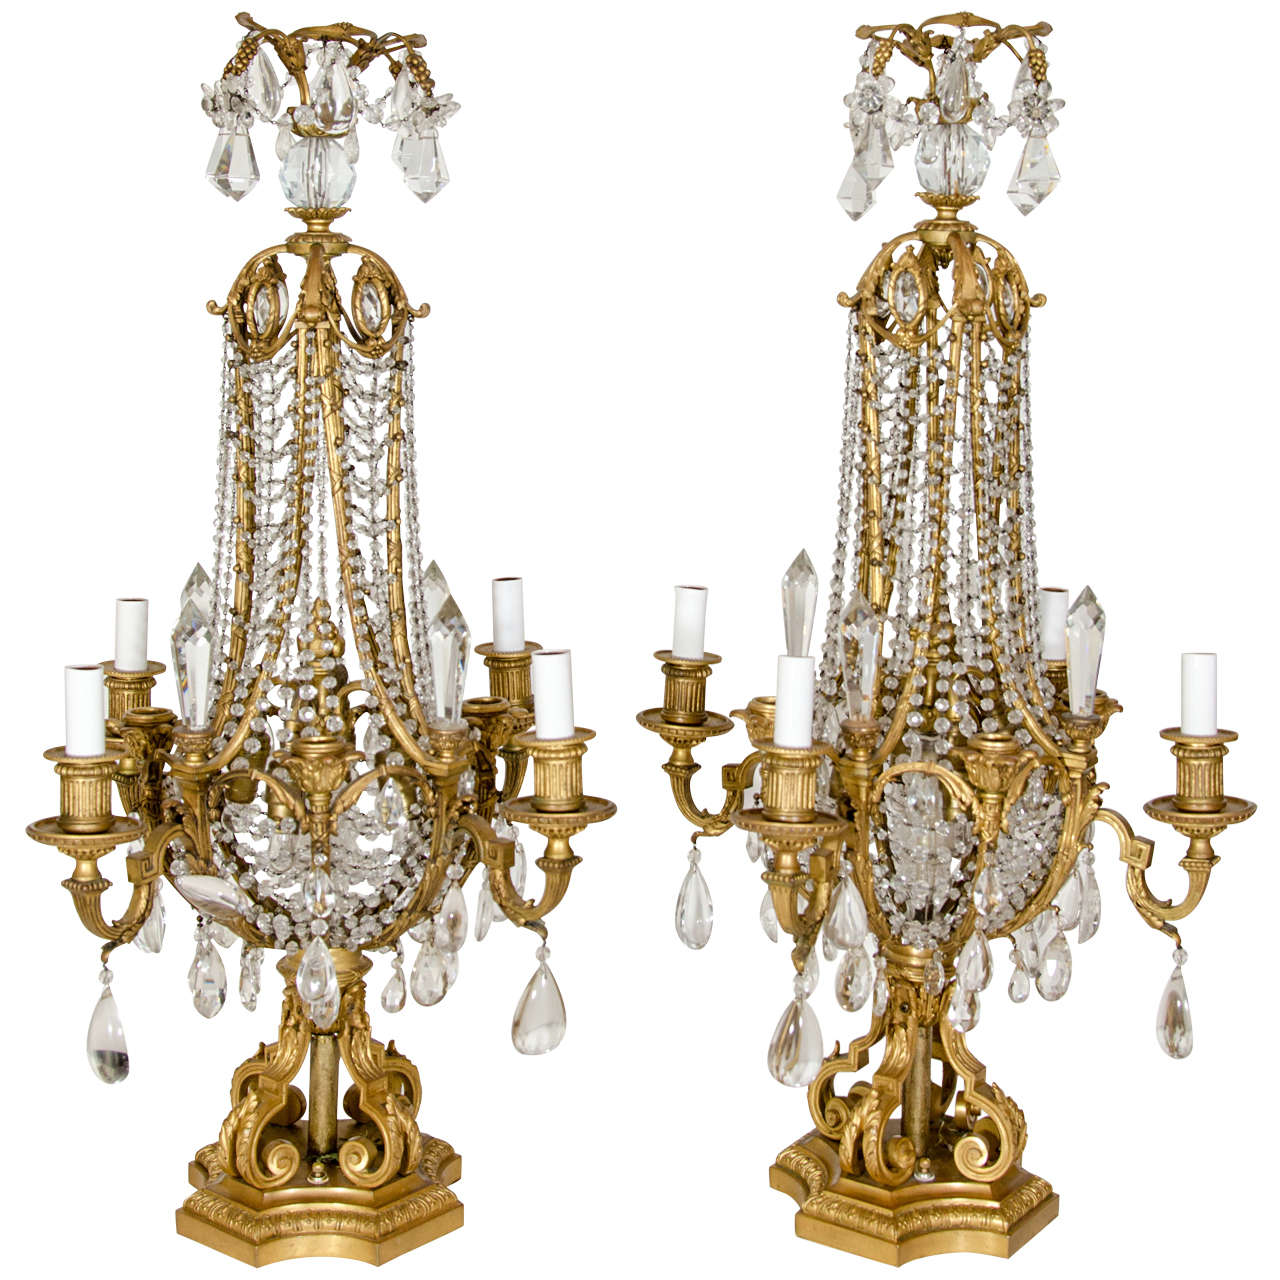 Pair Of Antique French Louis Xvi Style Gilt Bronze And